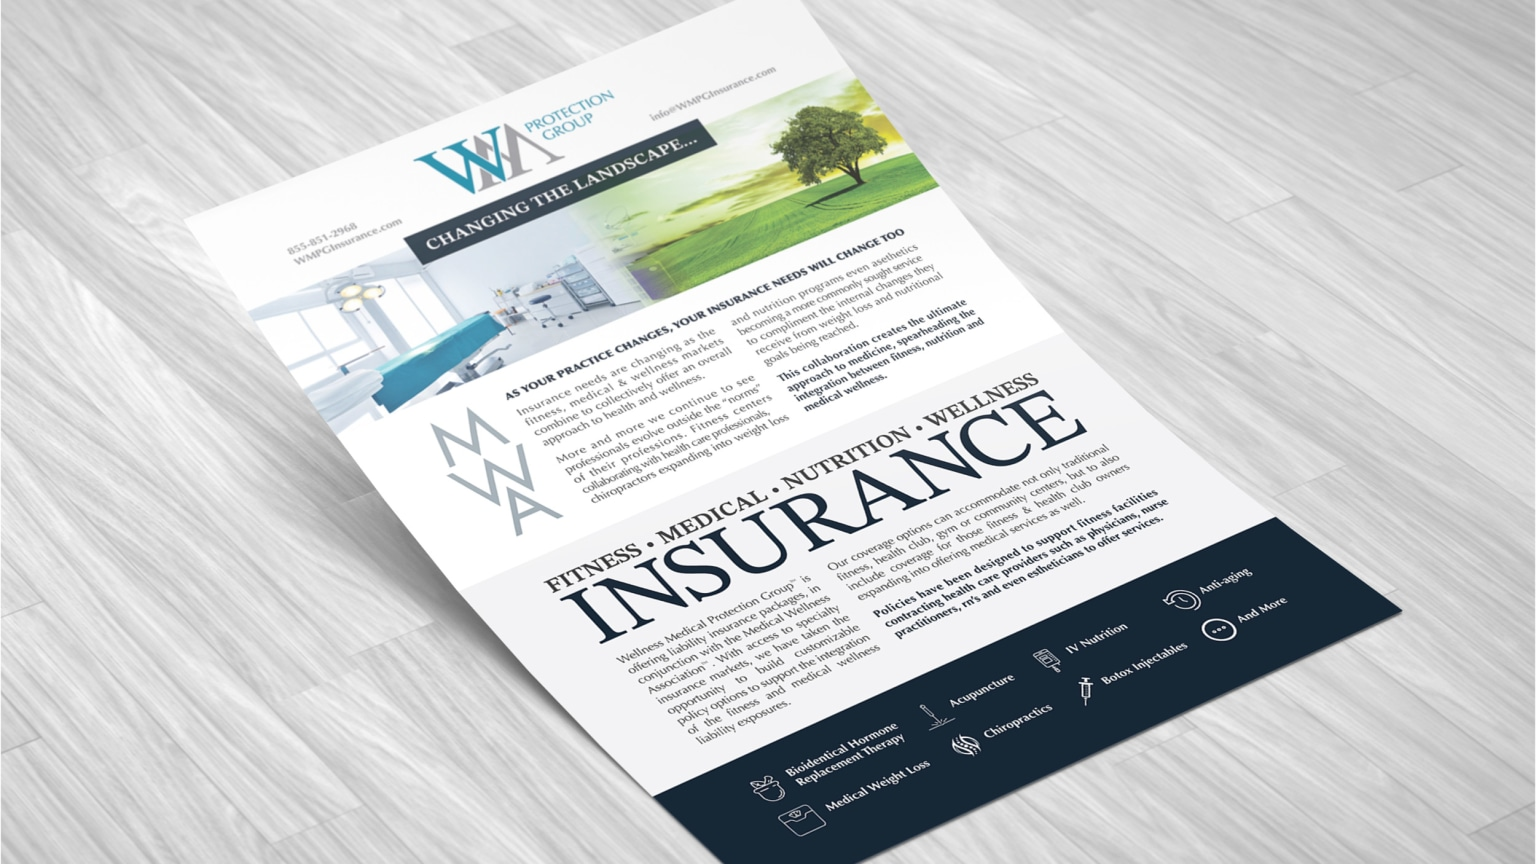 WM Protection Group - Brand & Website Development